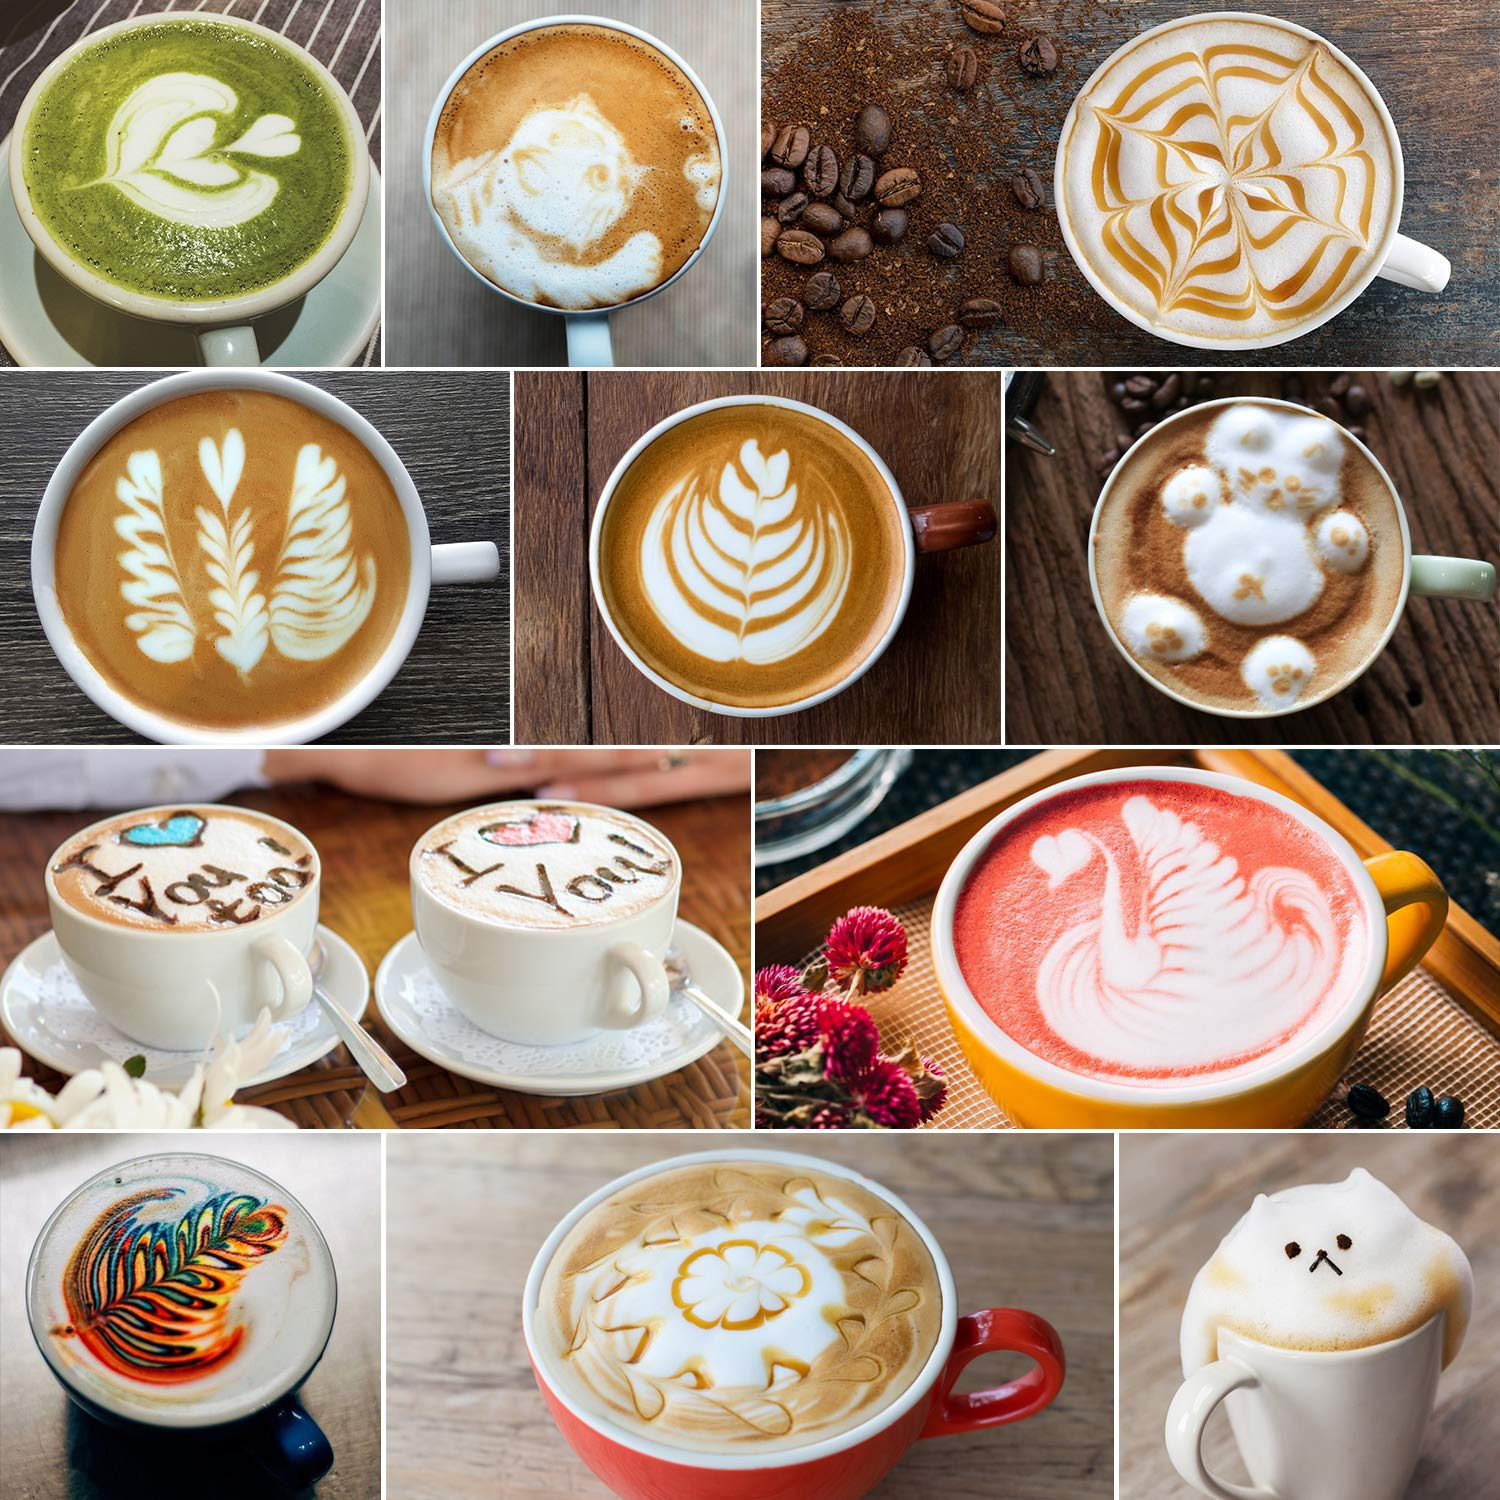 Milk Frothing Pitcher 600ml/350ml/900ml (20oz/12oz/32oz) Steaming Pitchers Stainless Steel Milk/Coffee/Cappuccino/Latte Art Barista Steam Pitchers Milk Jug Cup with Decorating Art Pen, Latte Arts by Adorever (Image #7)